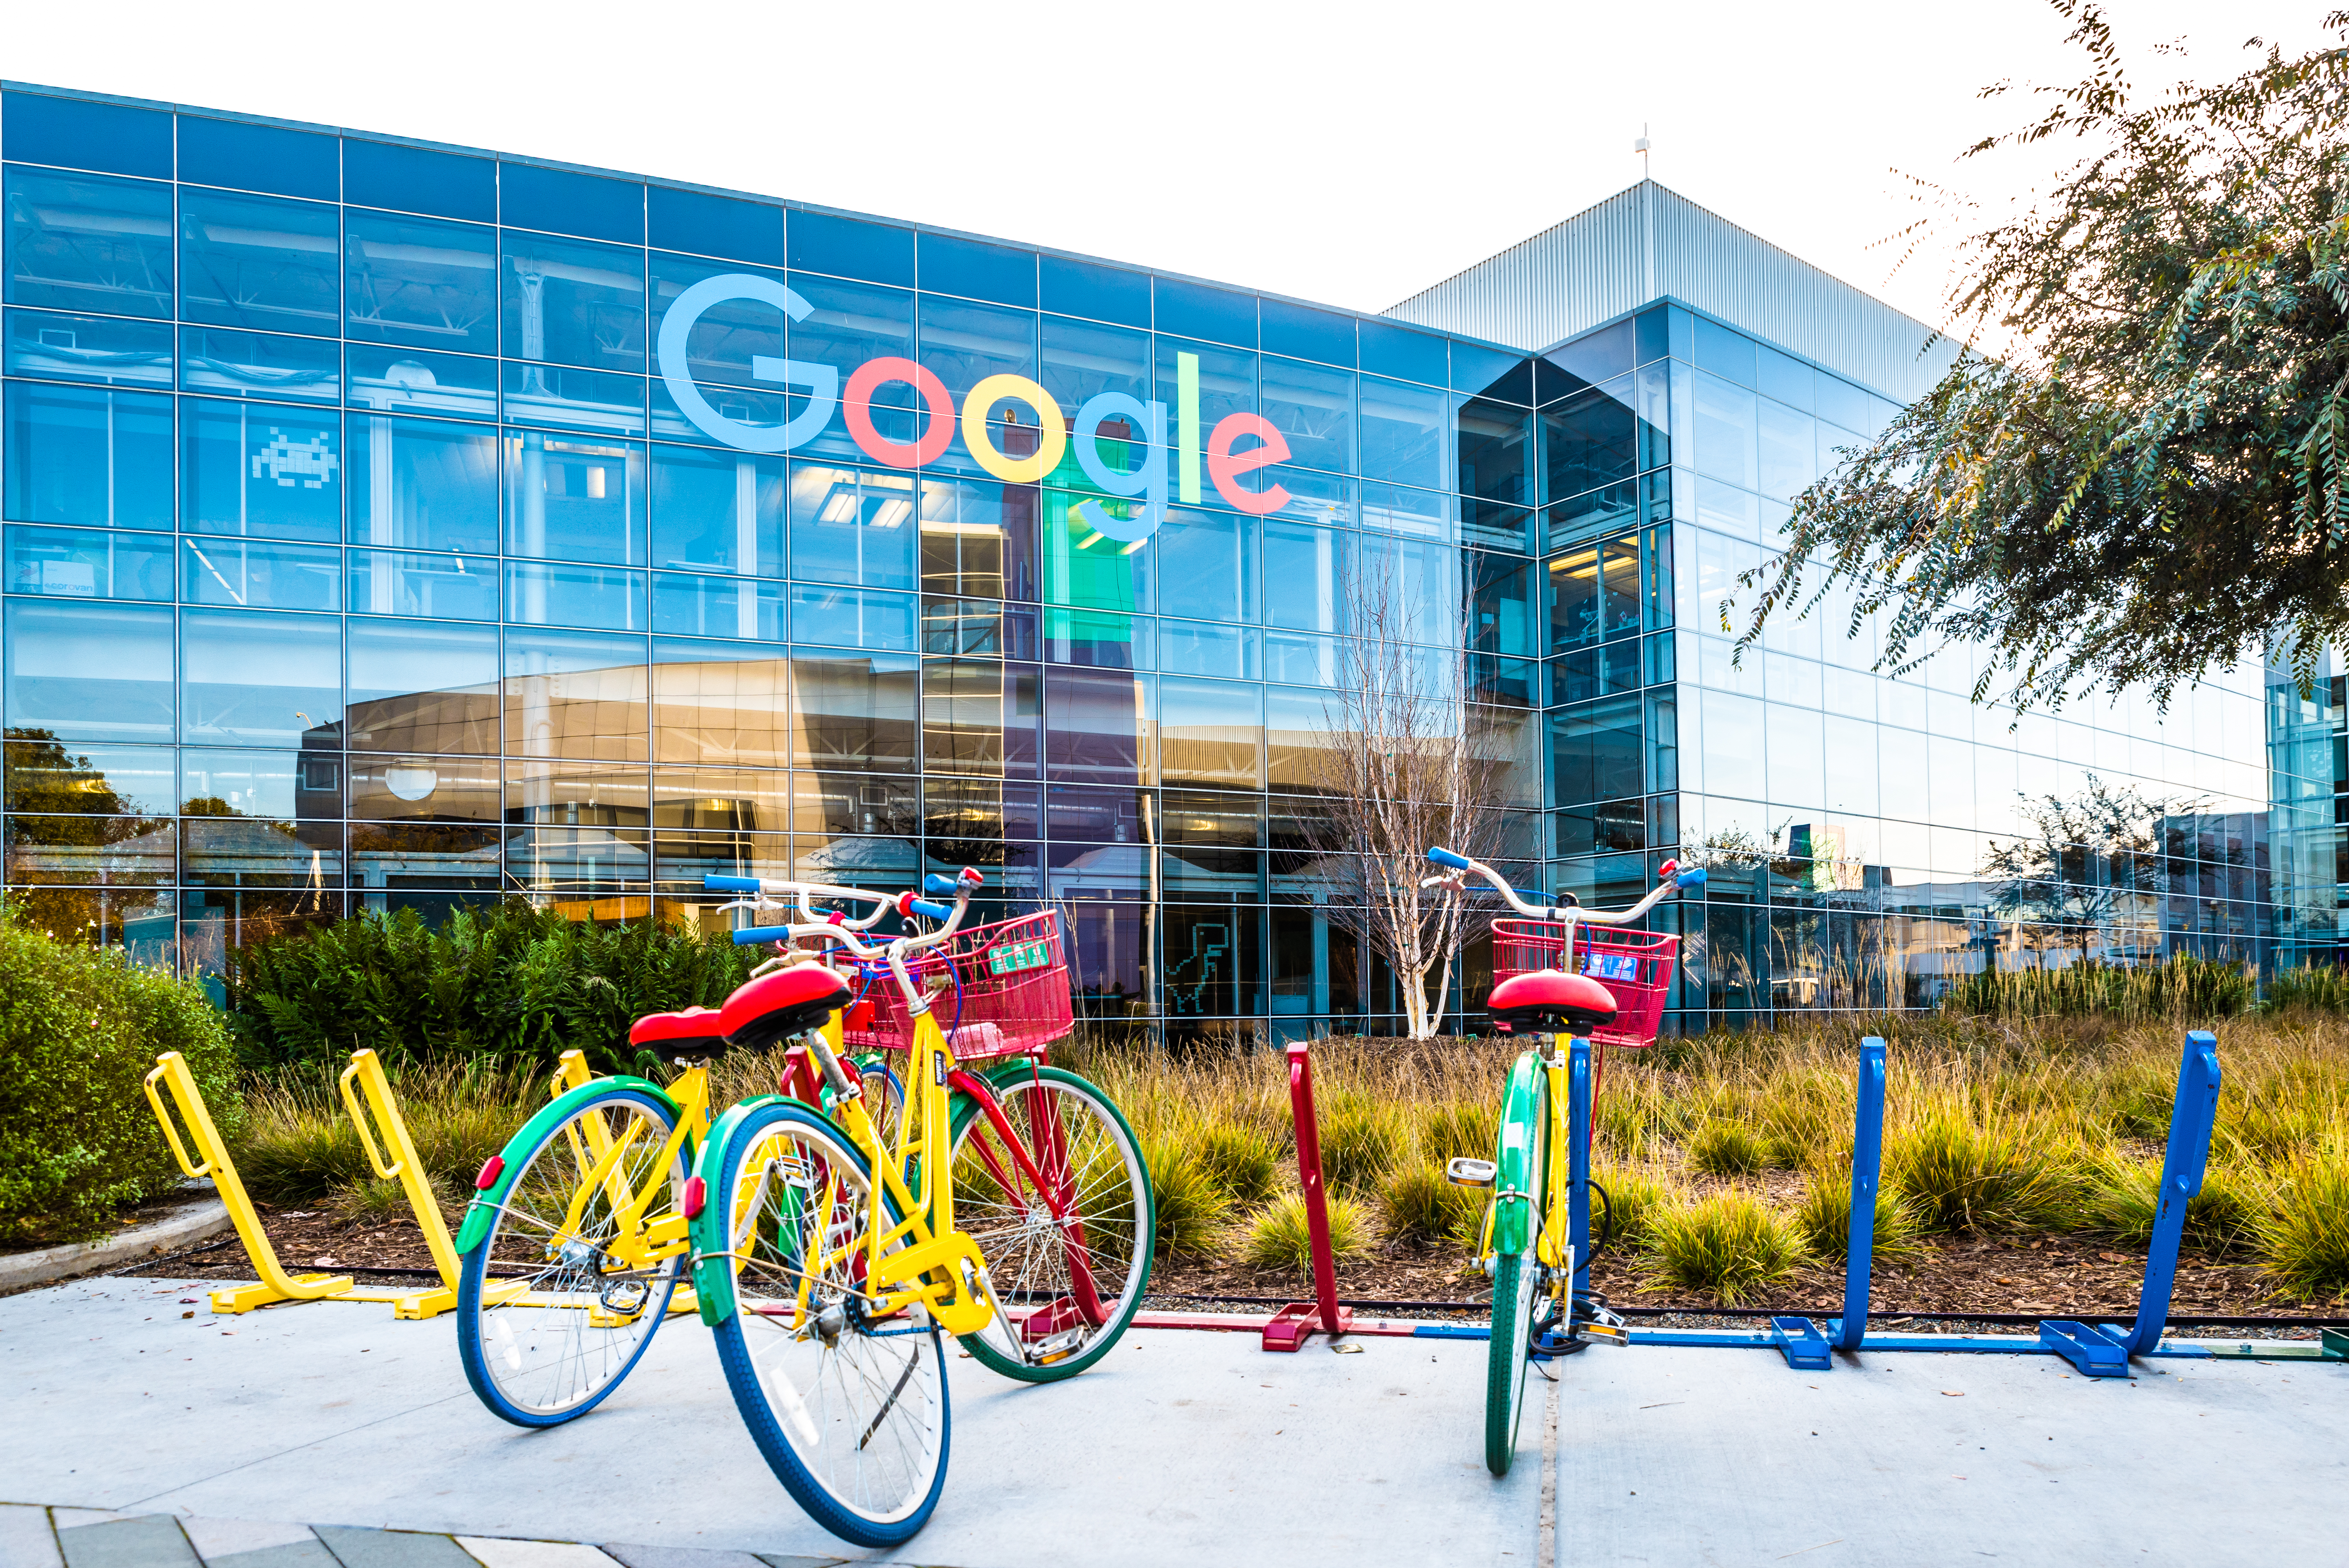 Google offices in Mountain View in 2016.